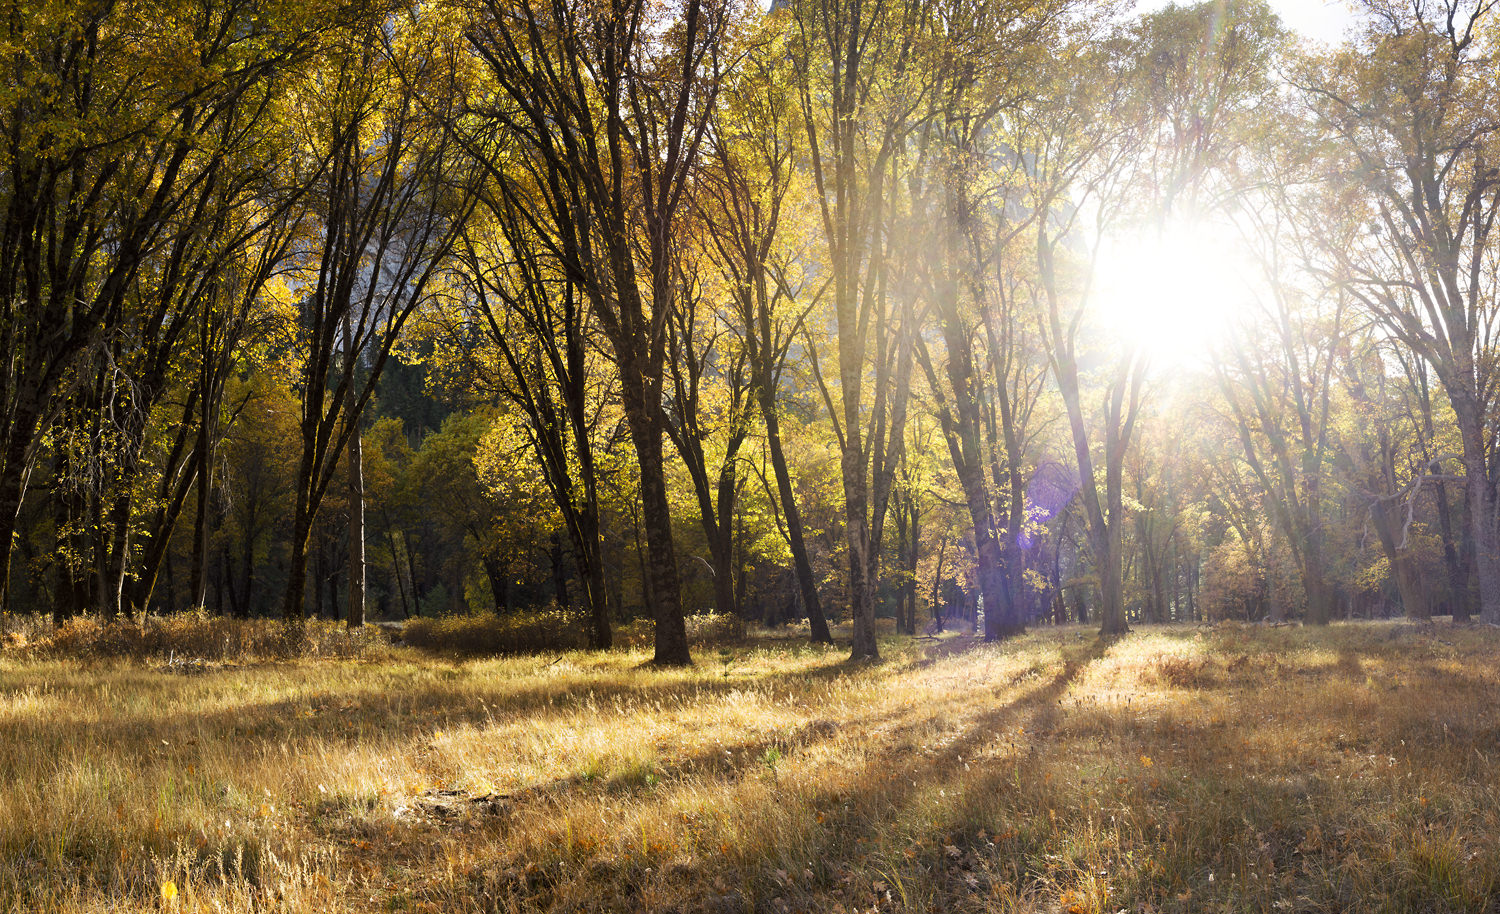 El_Capitan_Meadow_Autumn-5629.jpg